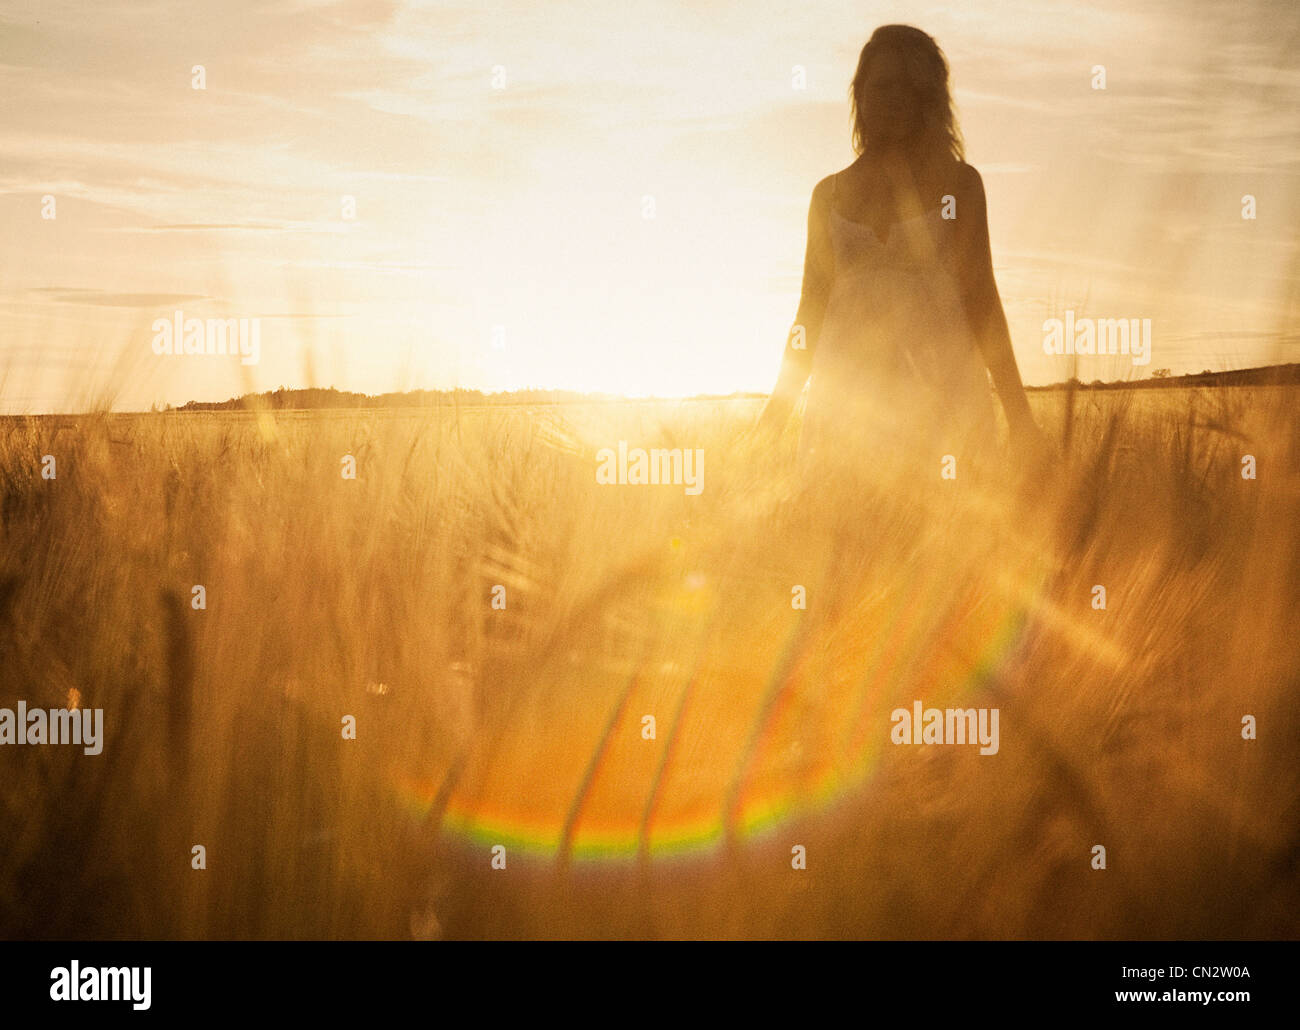 Young woman in barley field - Stock Image